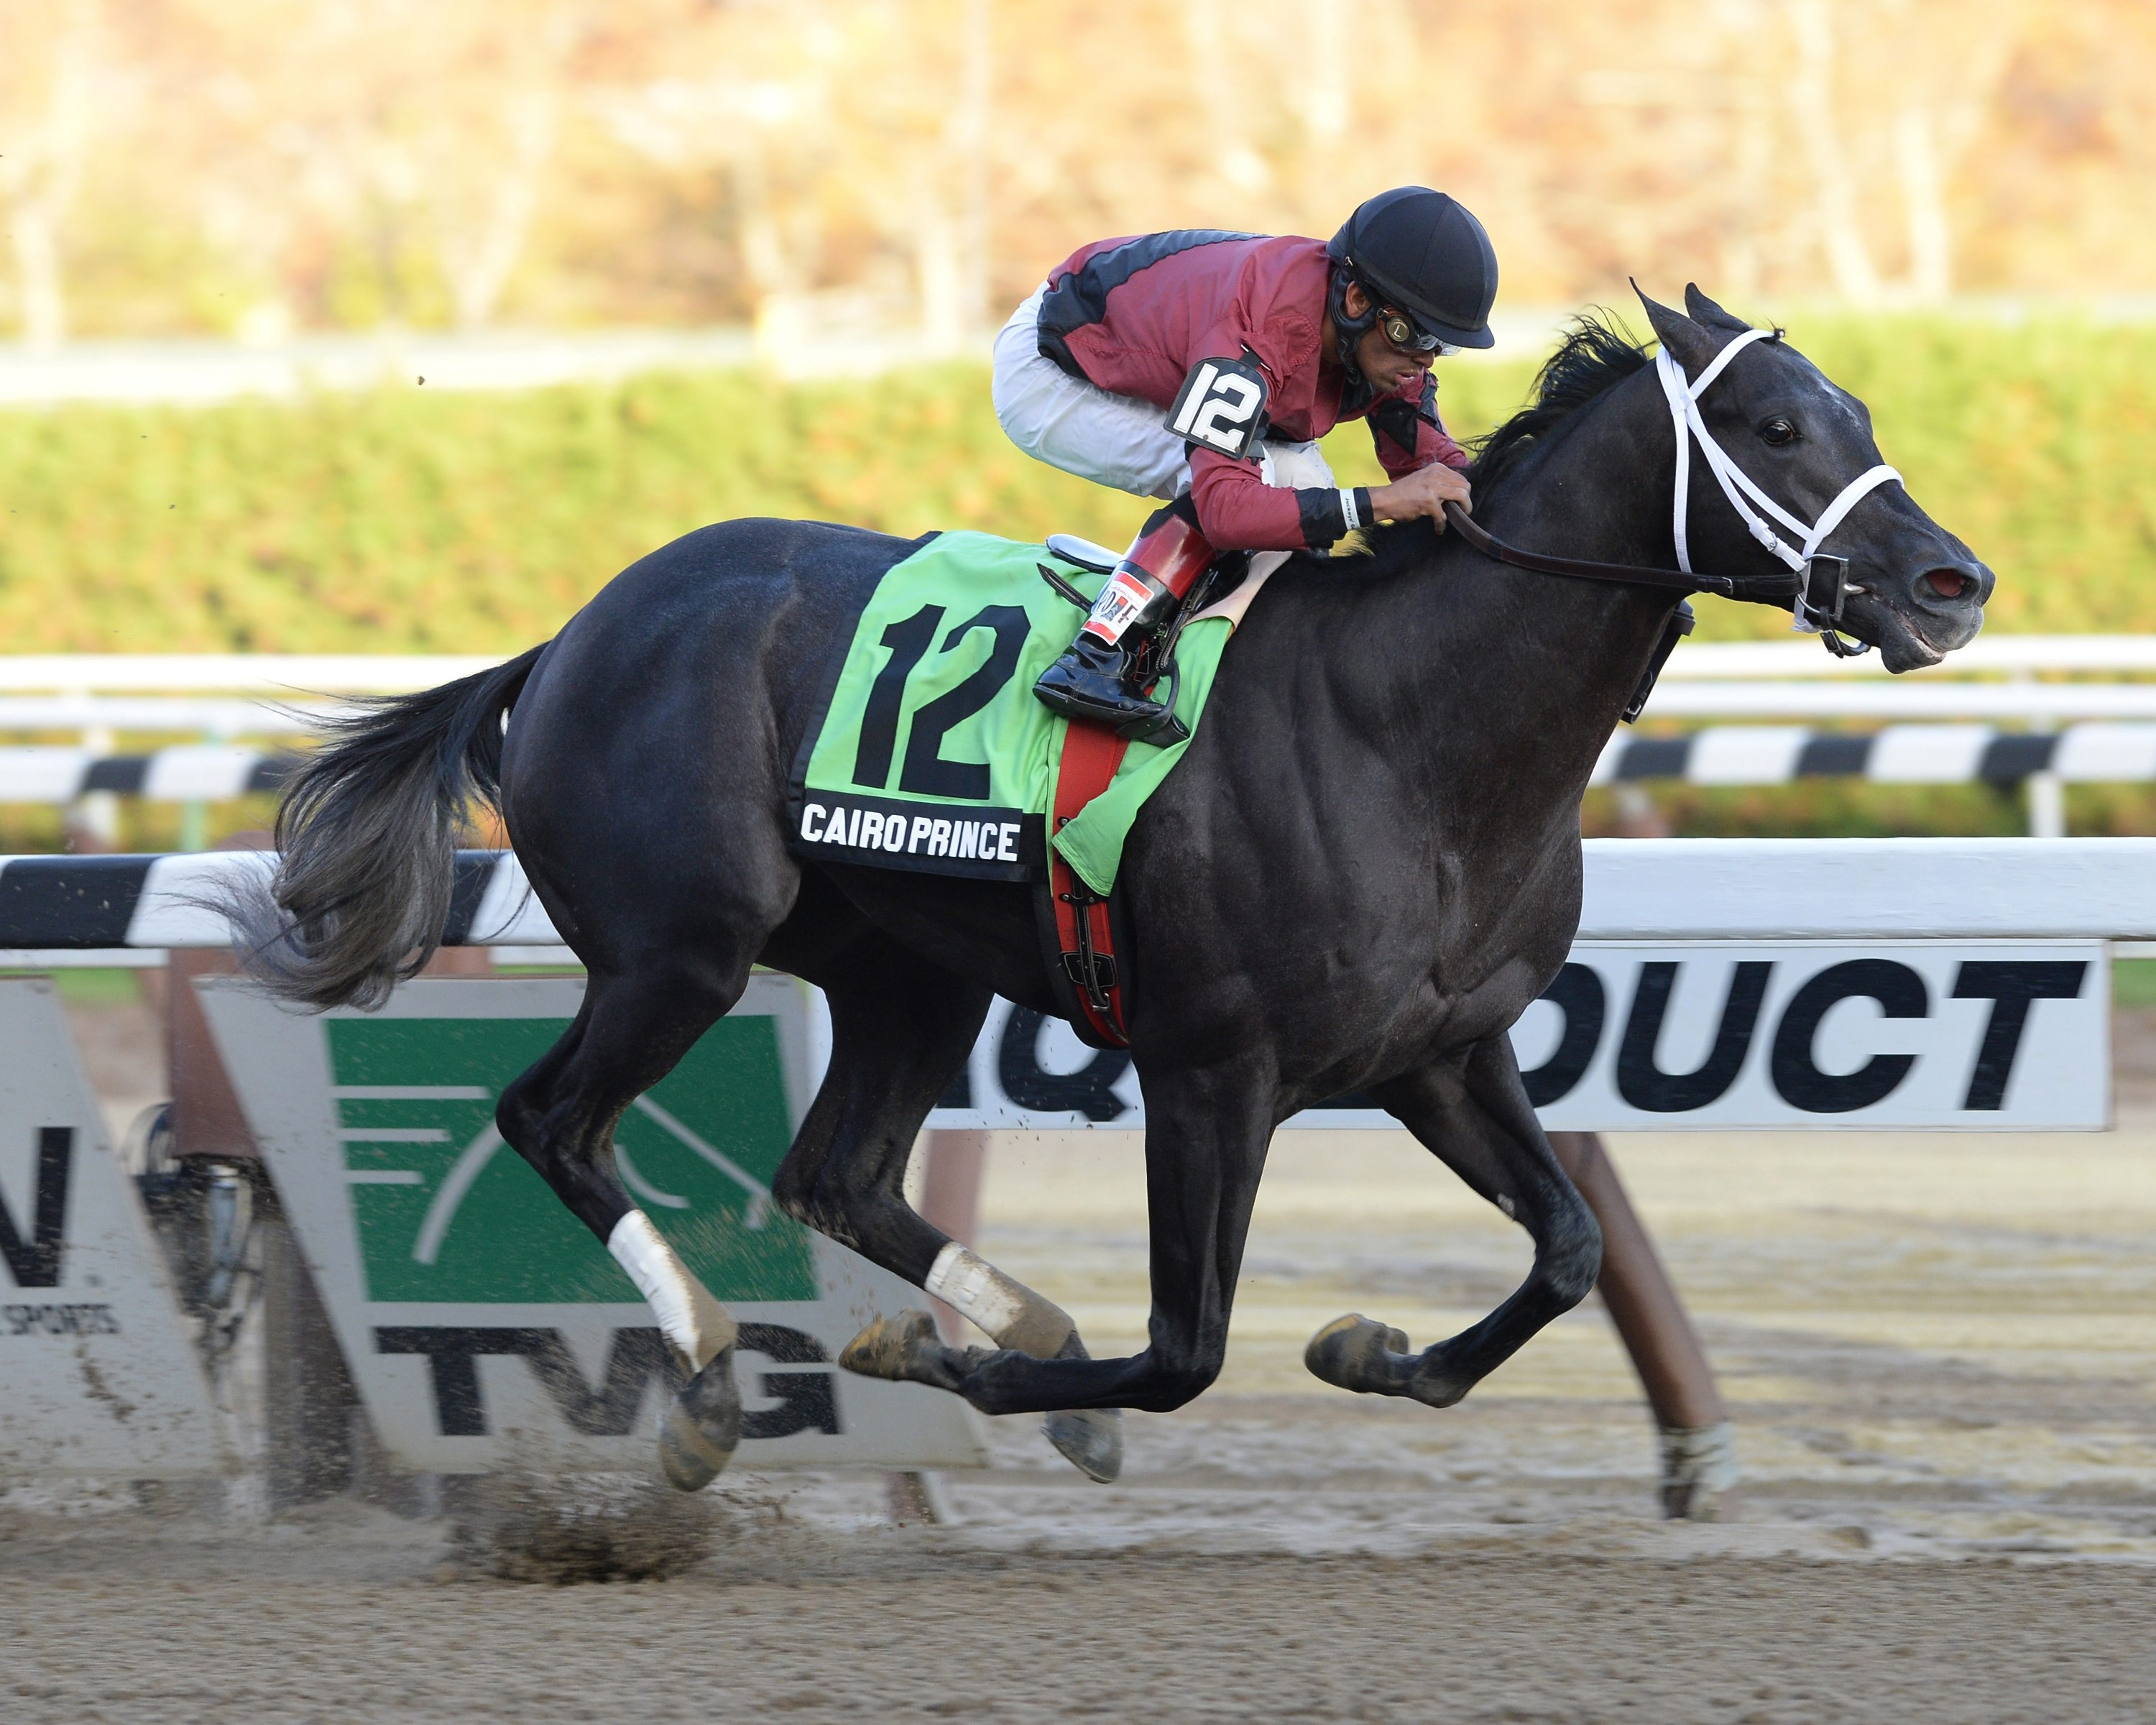 With a majority interest in Cairo Prince, Sheikh Mohammed Al Maktoum hopes he has a top contender for his first victory in the Kentucky Derby.